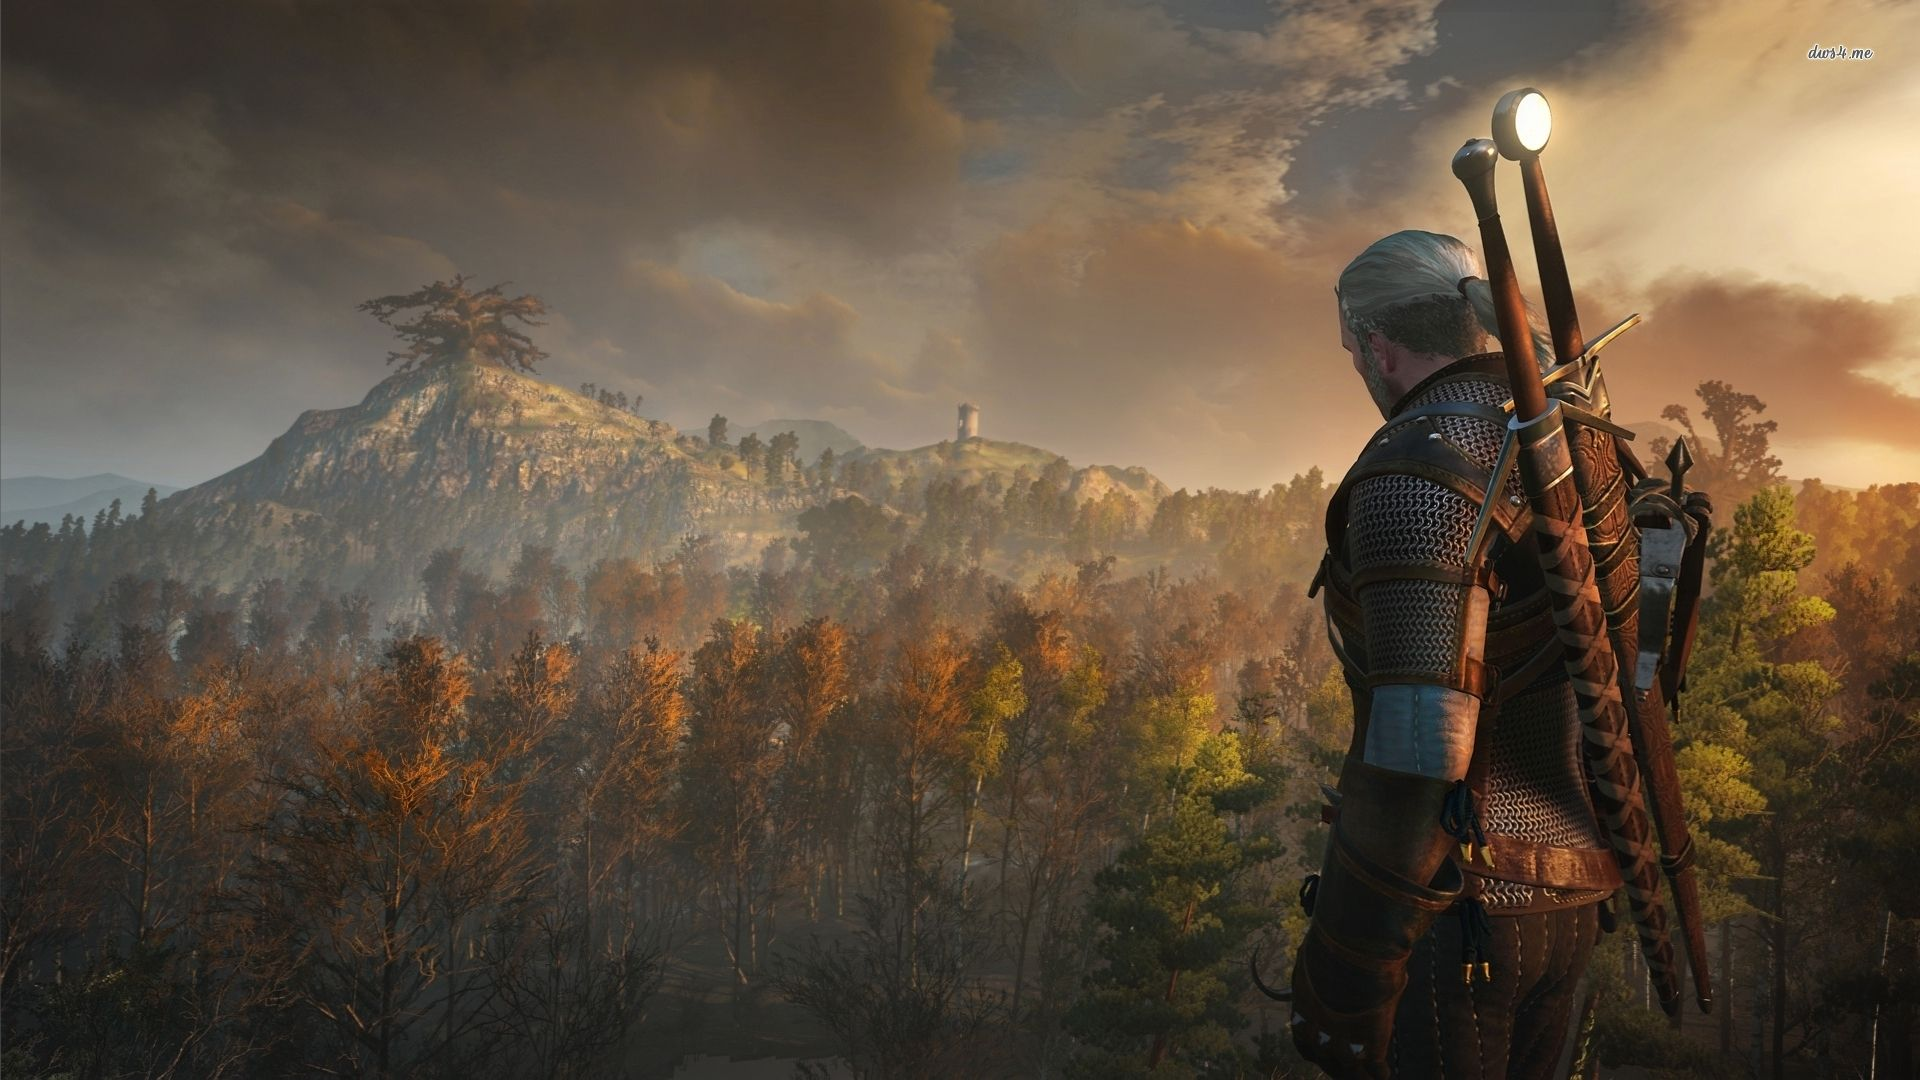 The Witcher Wild Hunt Wallpapers HD Wallpapers | wallpapers | Pinterest | The Witcher, The ...